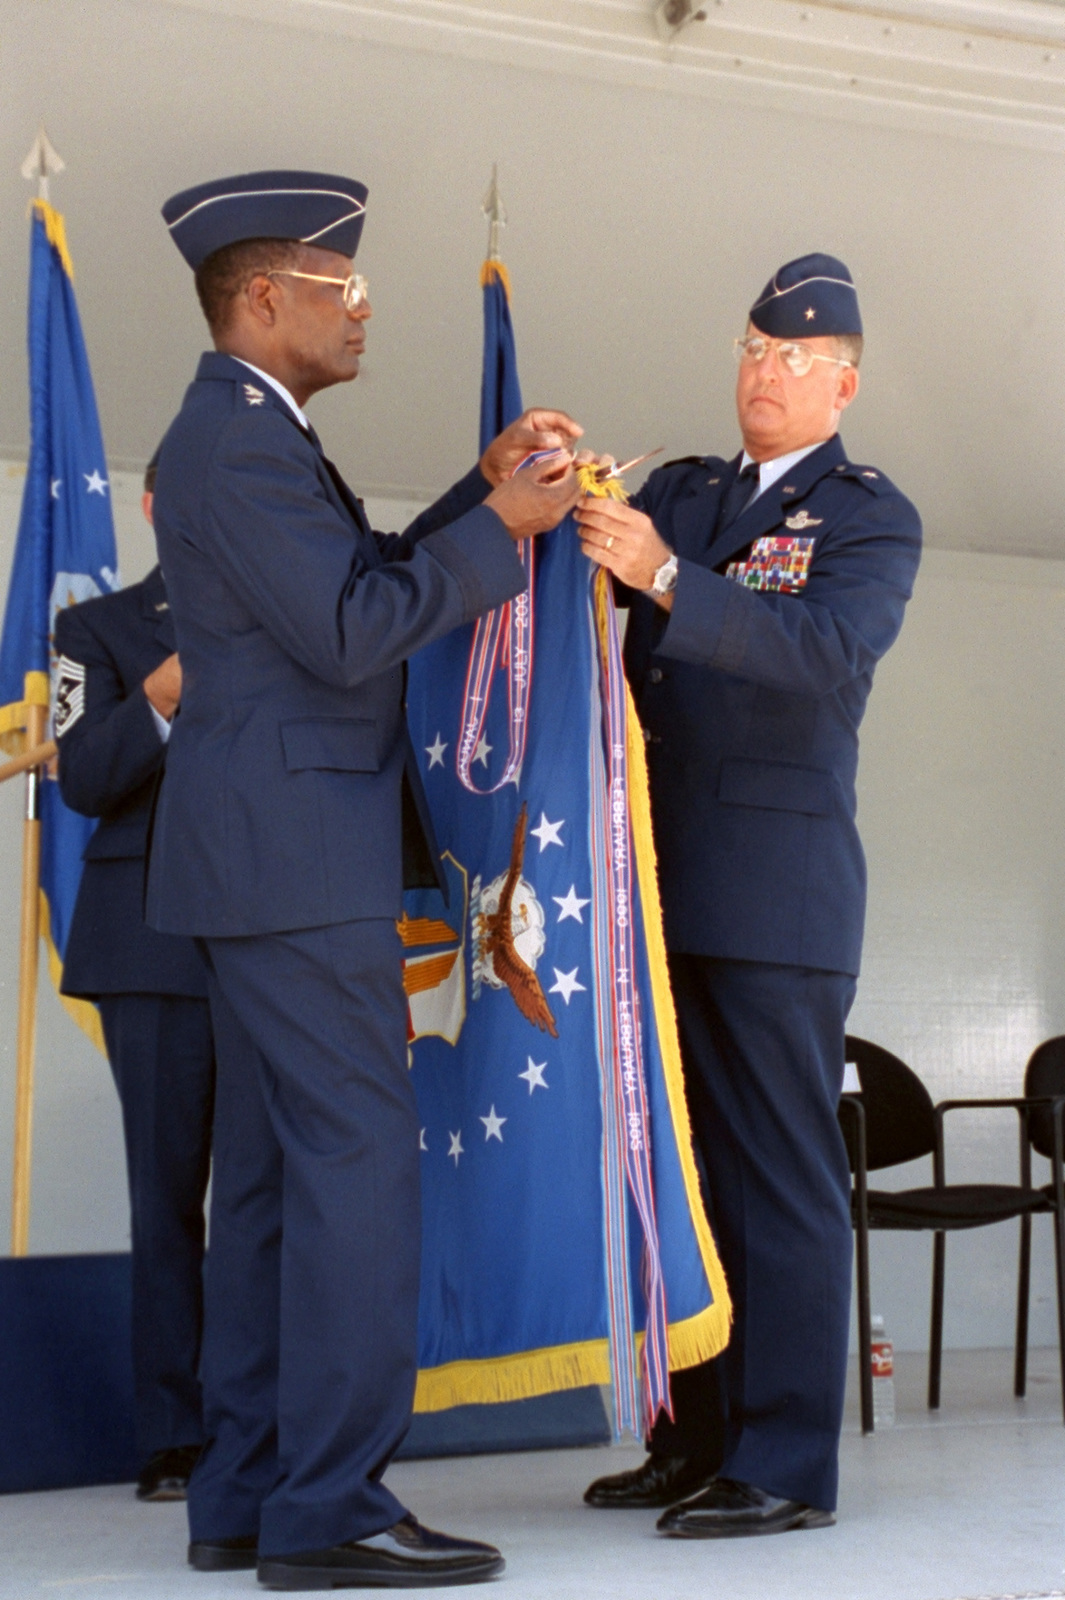 General (GEN) Lester L. Lyles, USAF, Commander, Air Force Material Command (AFMC), and Brigadier General (BGEN) Robert Murdock, USAF, San Antonio - Air Logistics Center (SA-ALC) Commander, pin the Agency guidon with the Outstanding Unit Ribbon, during the Kelly AFB closing ceremonies 13 July 01. Although the closing ceremony is in history books, government officials still actually own Kelly property and will until federal and state environmental regulators okay remedies for the installation's 30 sites that need environmental clean-up, according to federal law provisions